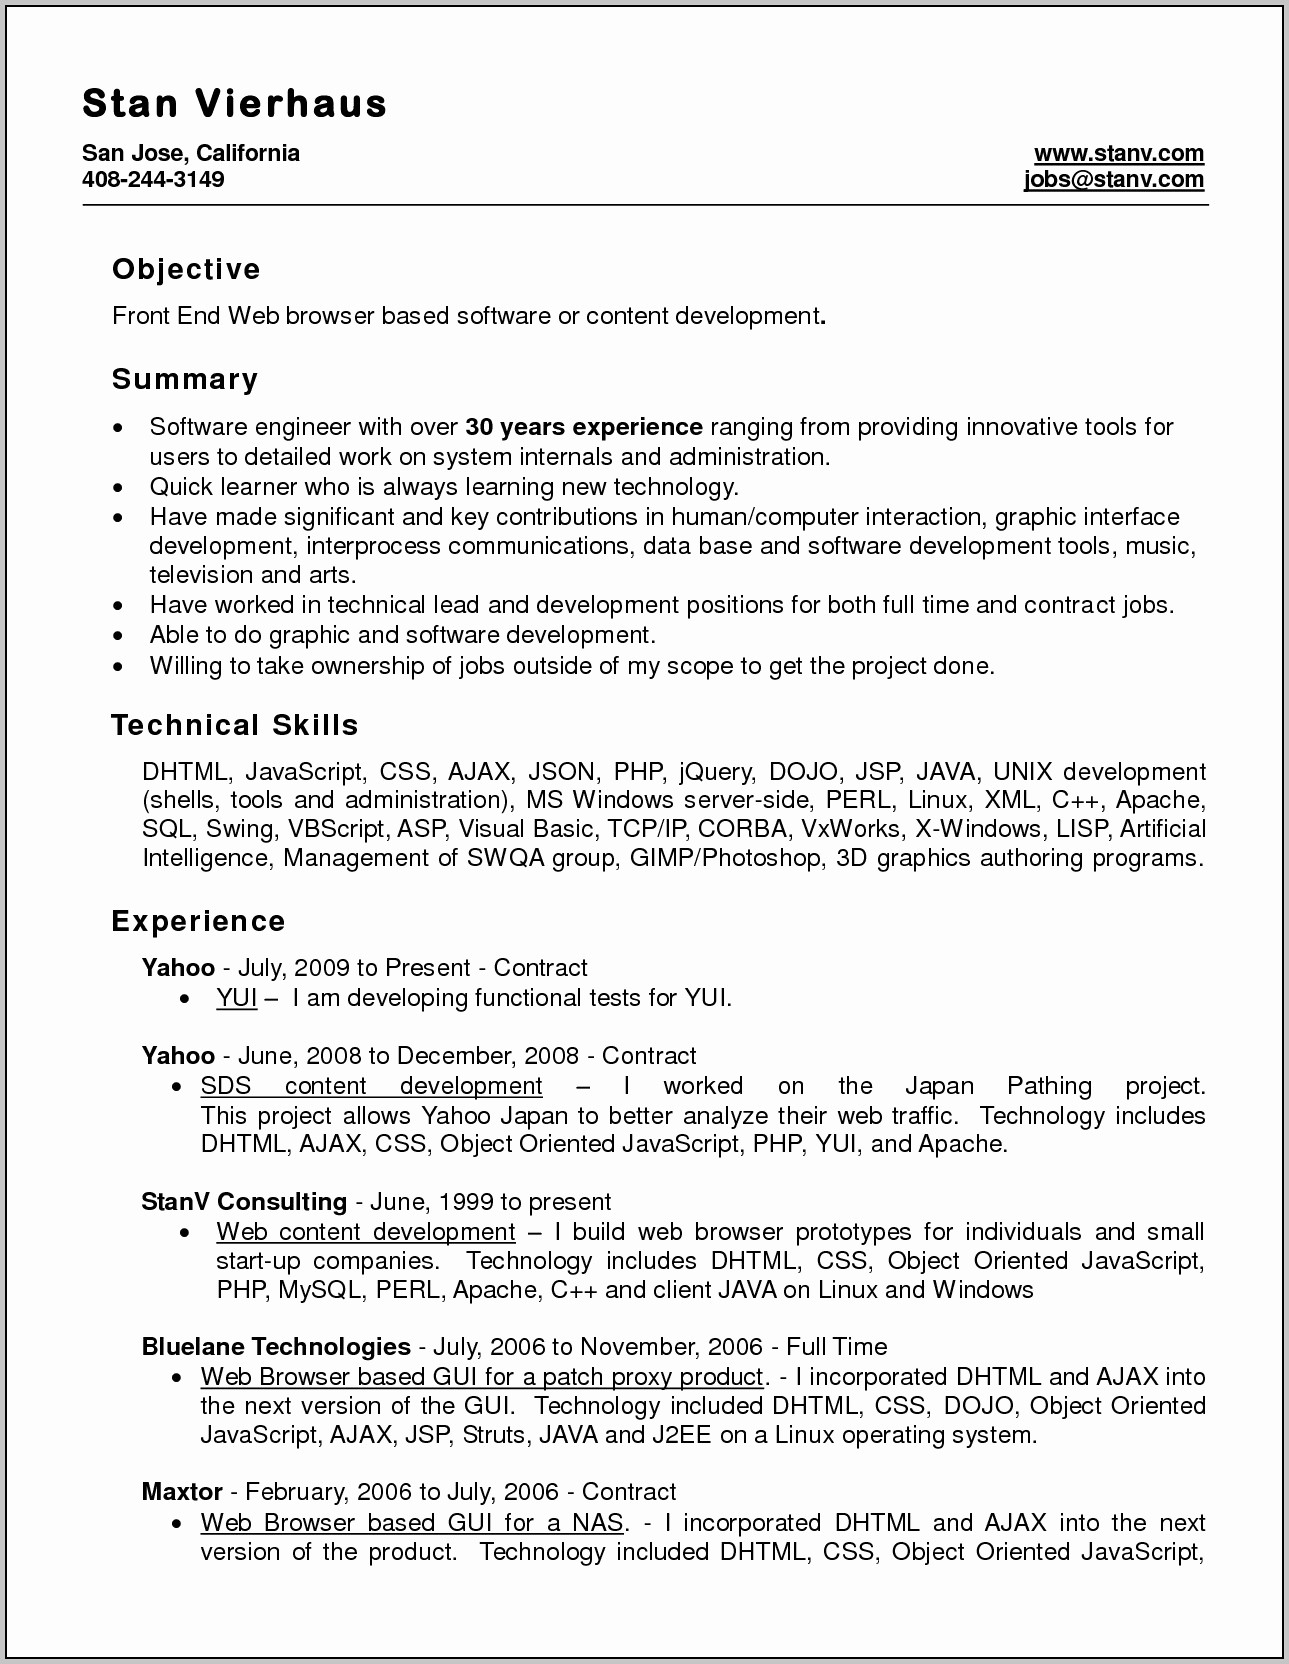 Free Word Resume Templates 2018 Unique Resume Examples Resume Template for Word 2007 Logistics